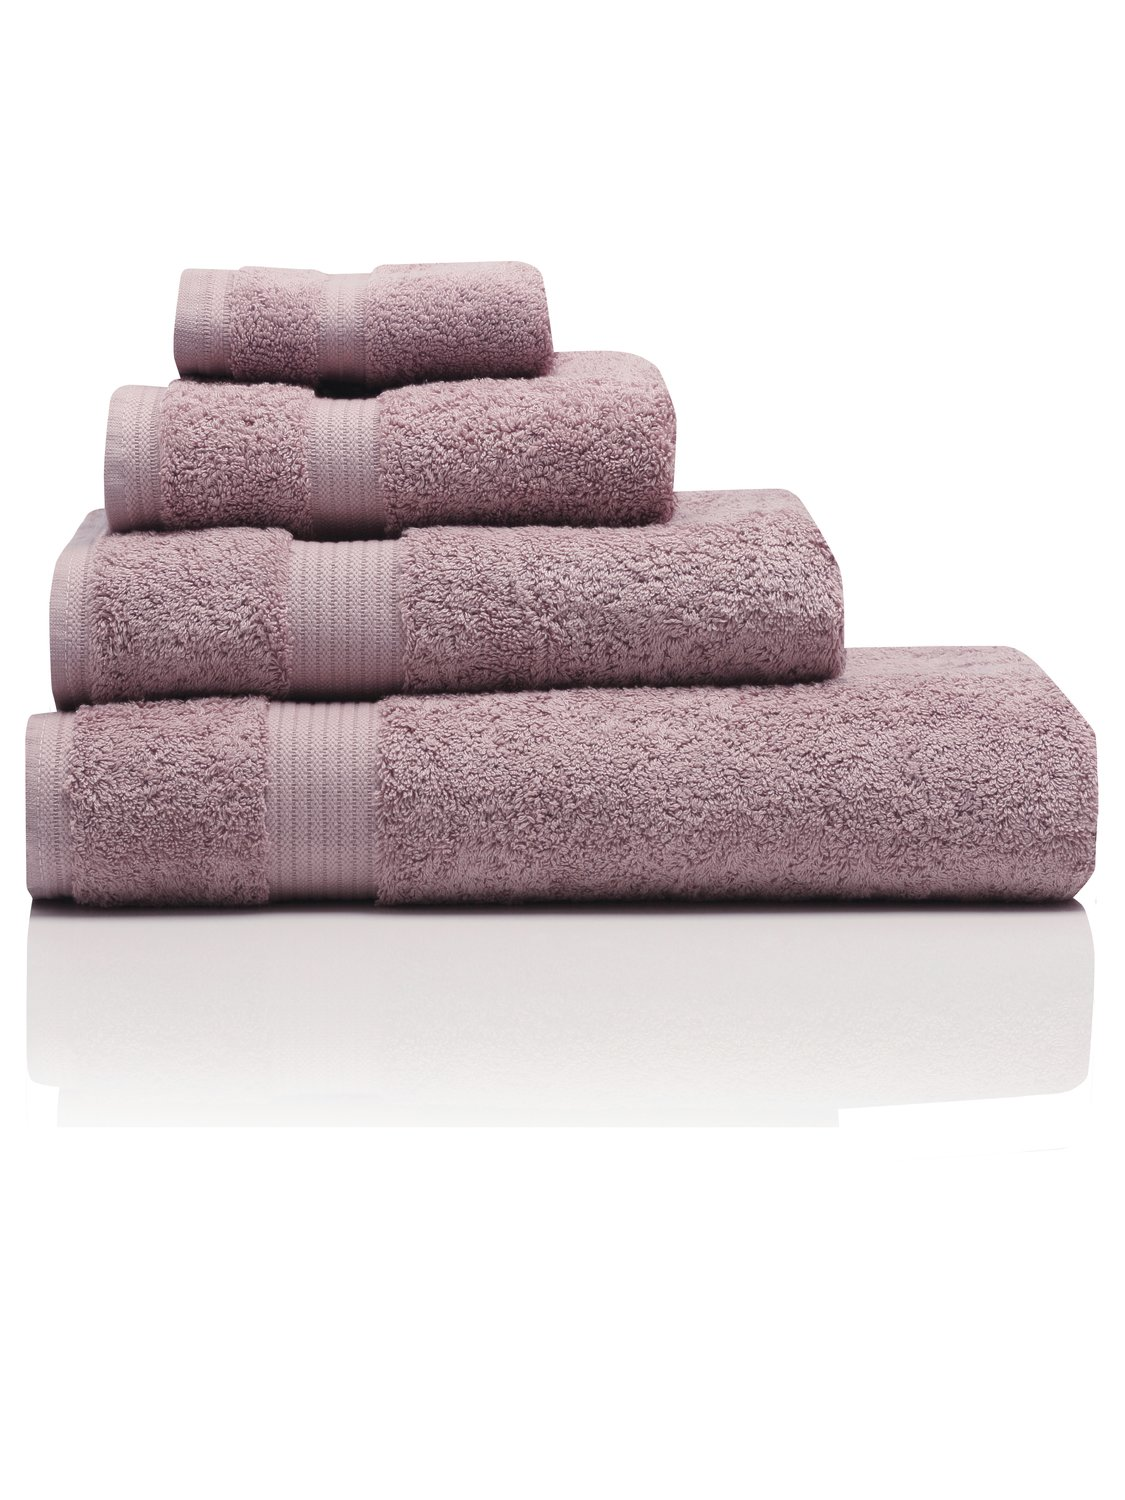 100% Combed Cotton 580Gsm Soft And Absorbent Bathroom Facecloth - Amethyst